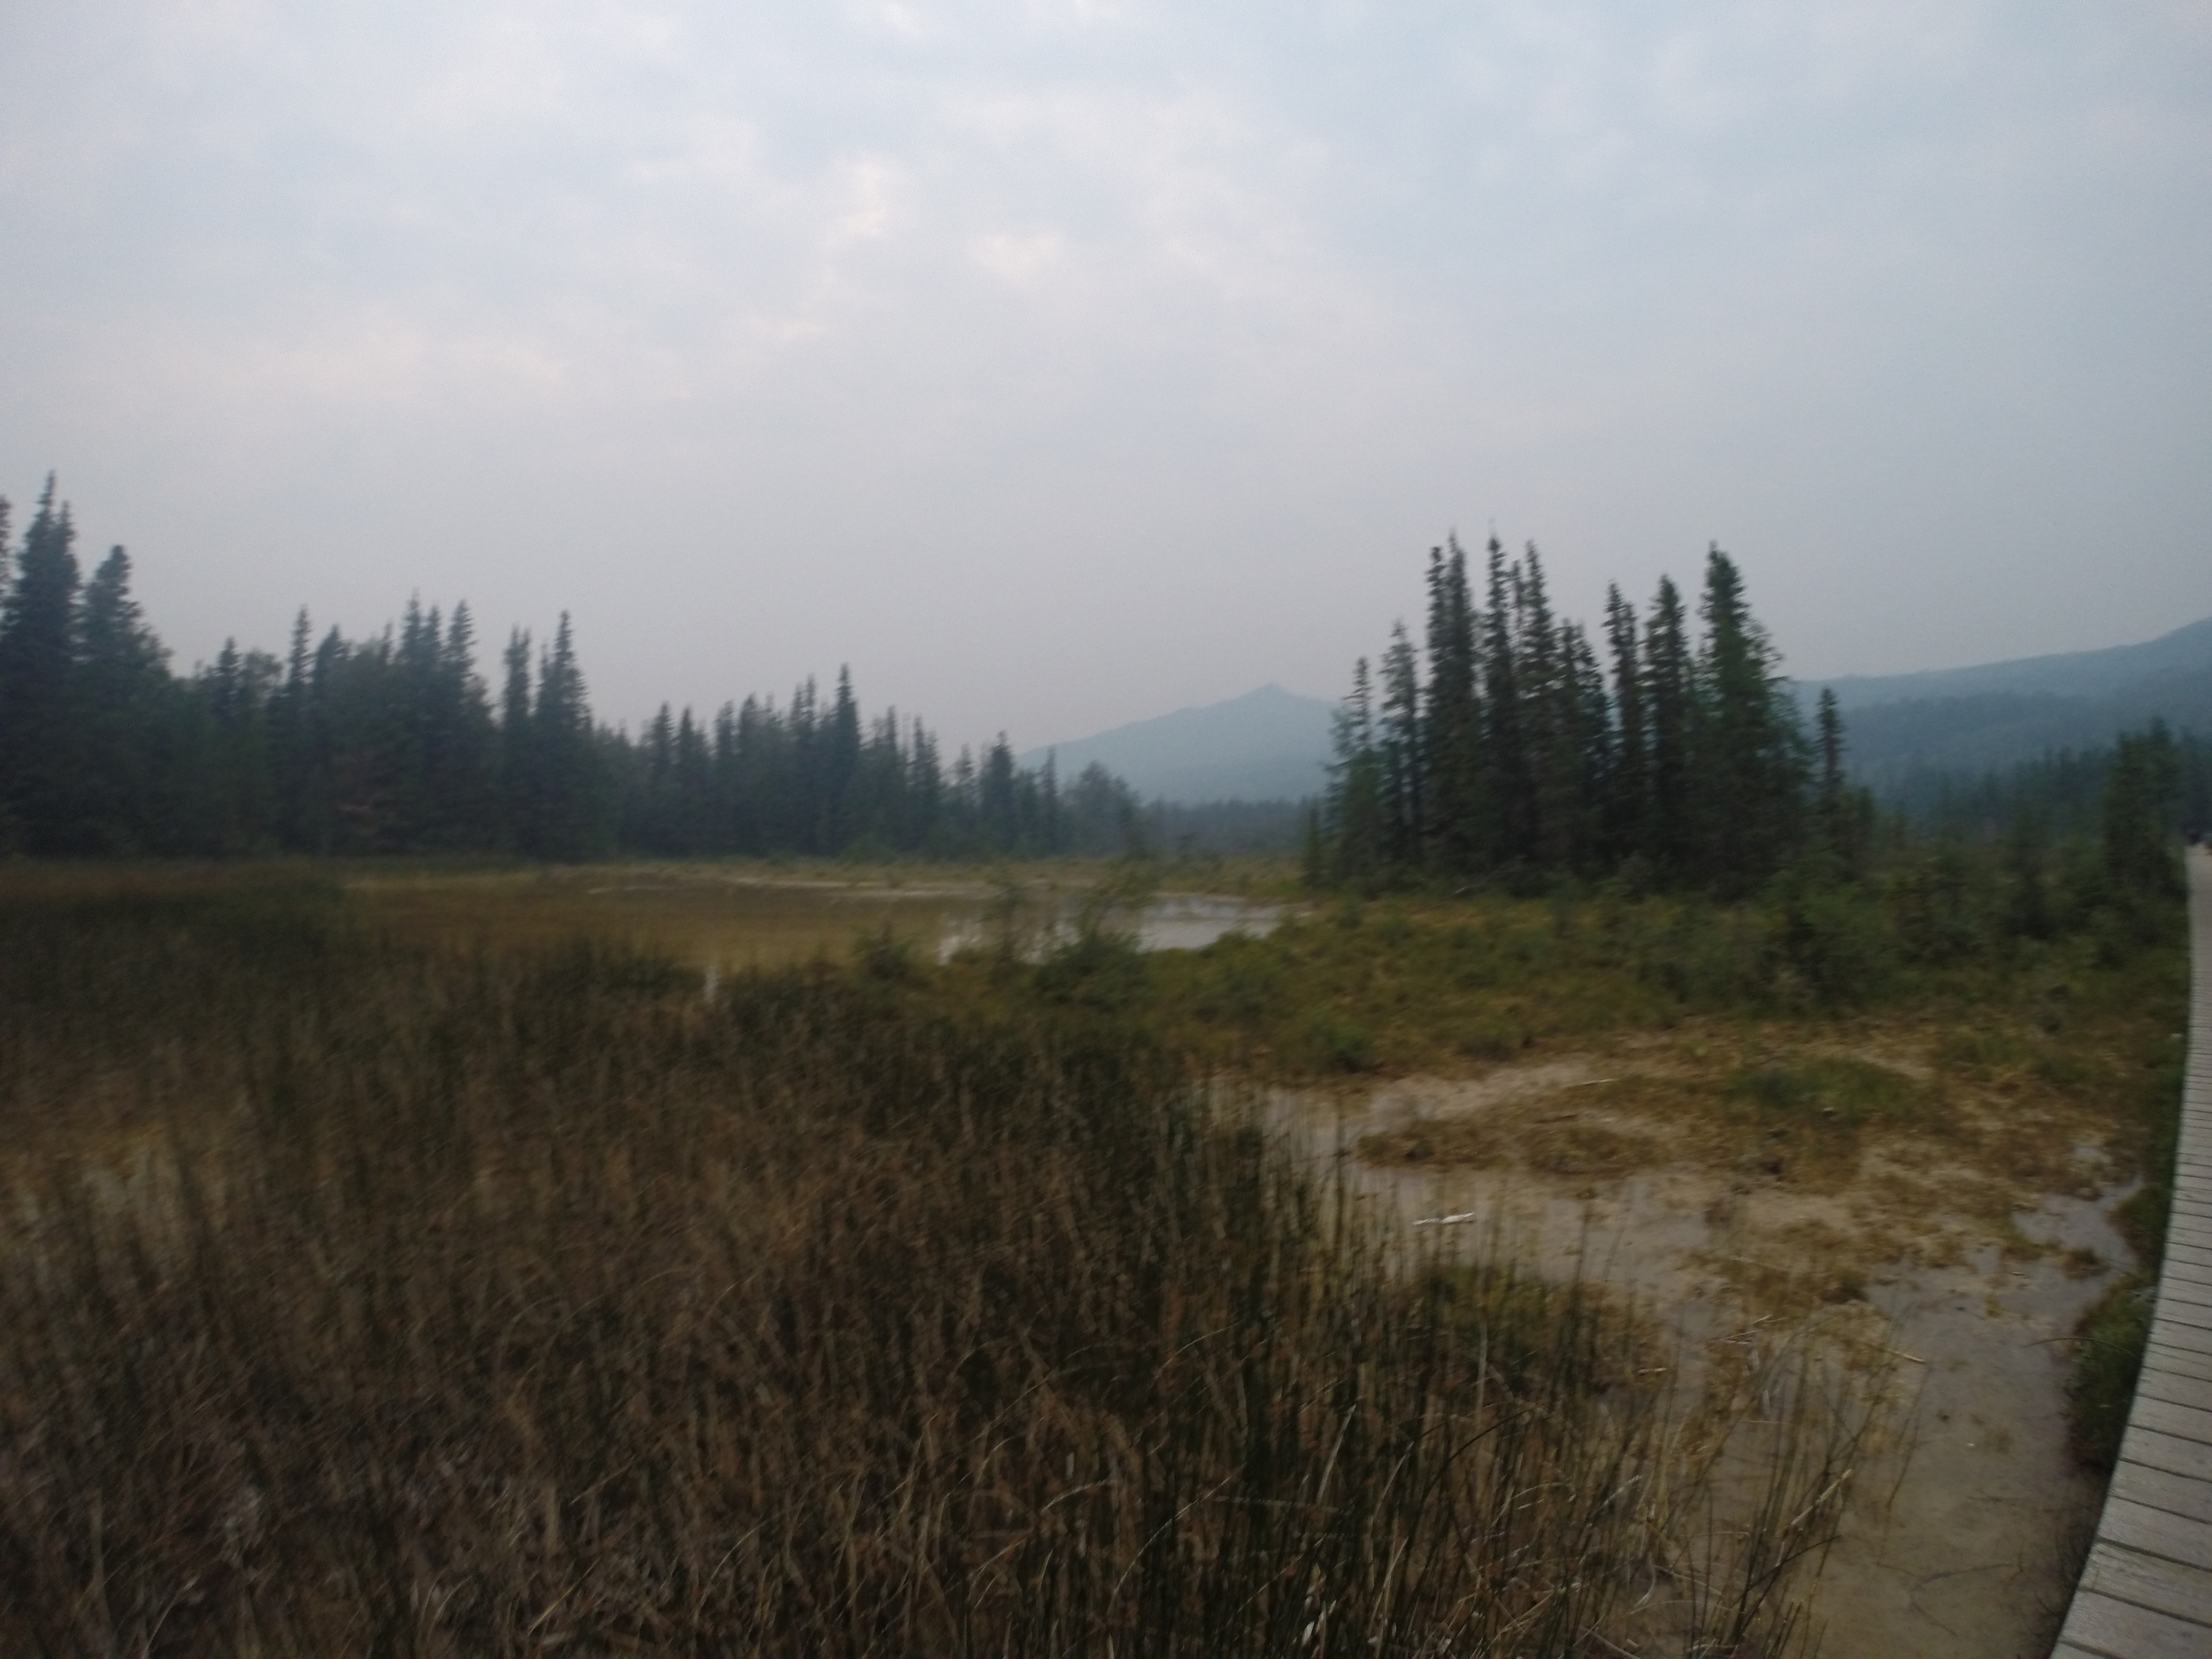 A view of the marshlands around Liard Hot Springs